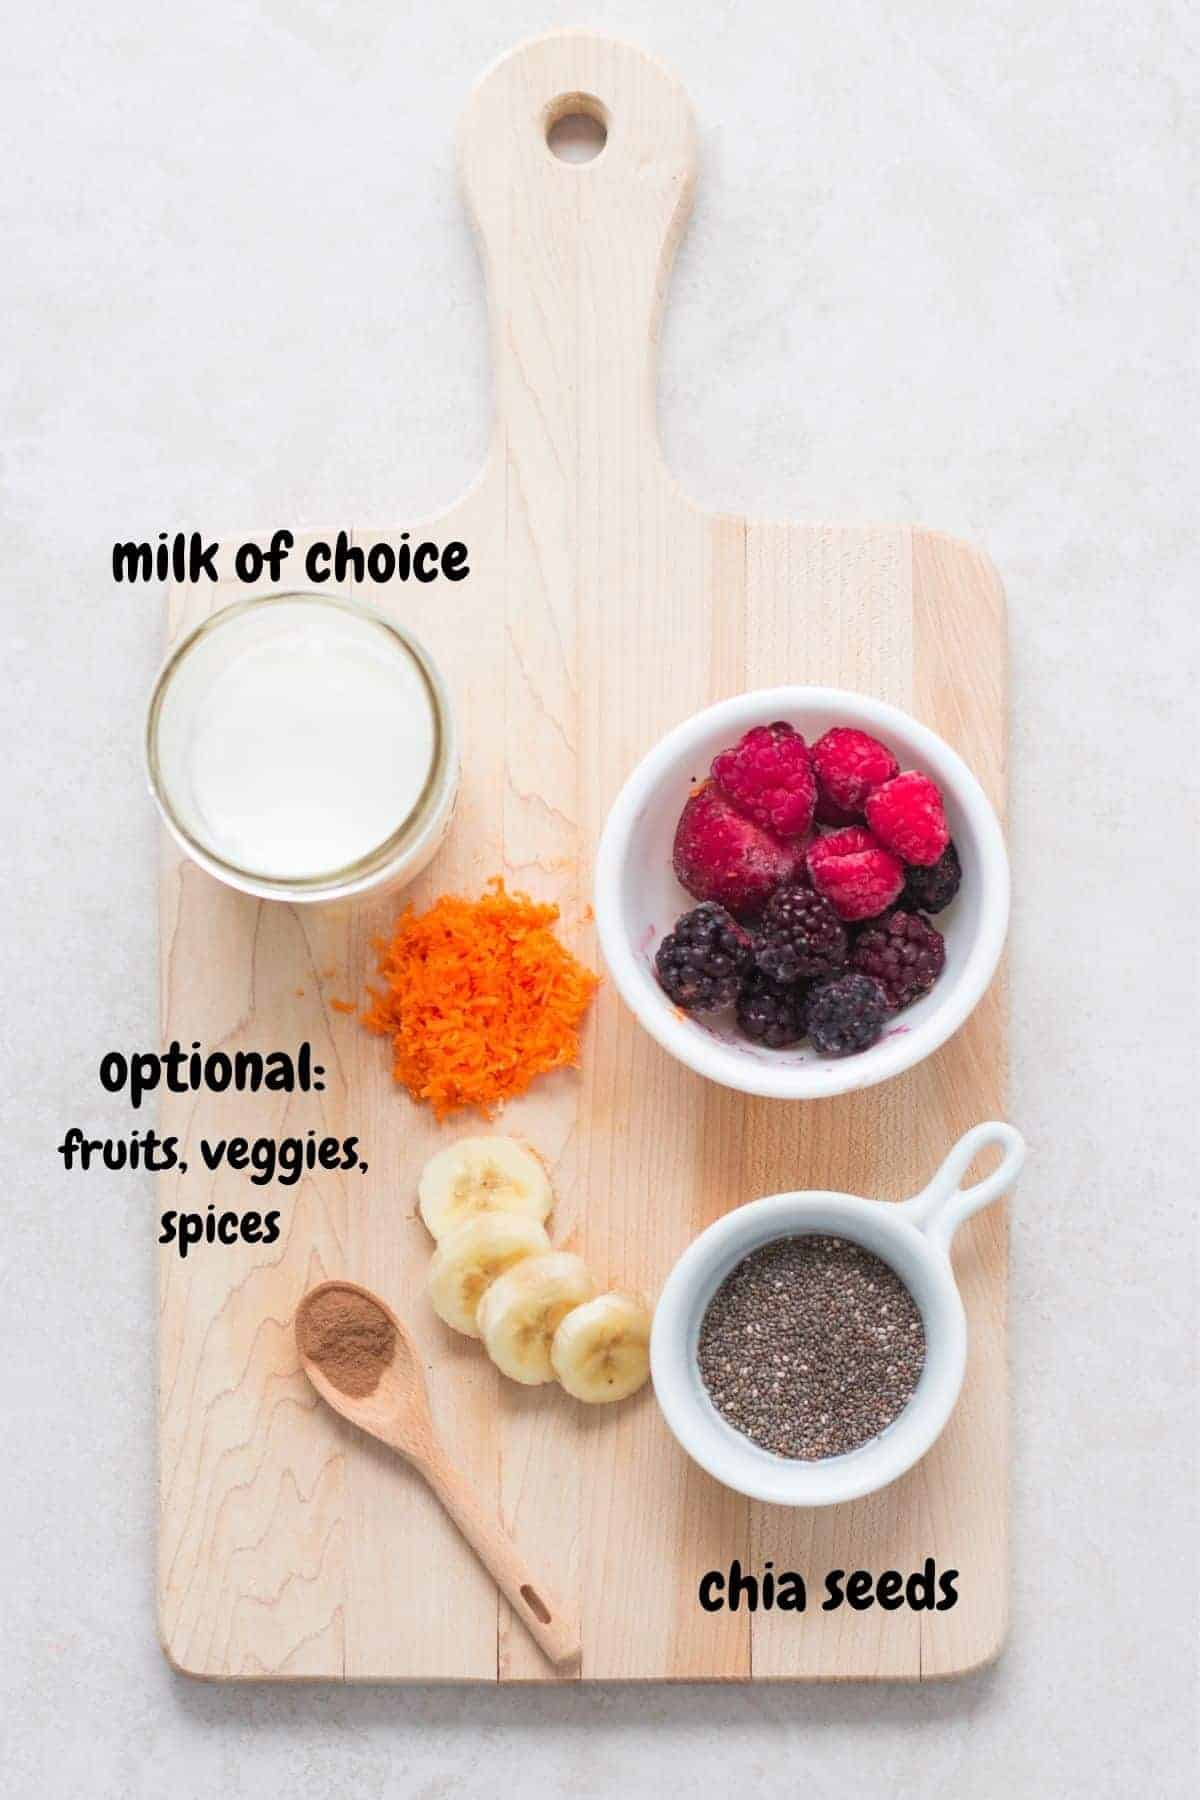 ingredients for the basic recipe on a wooden board